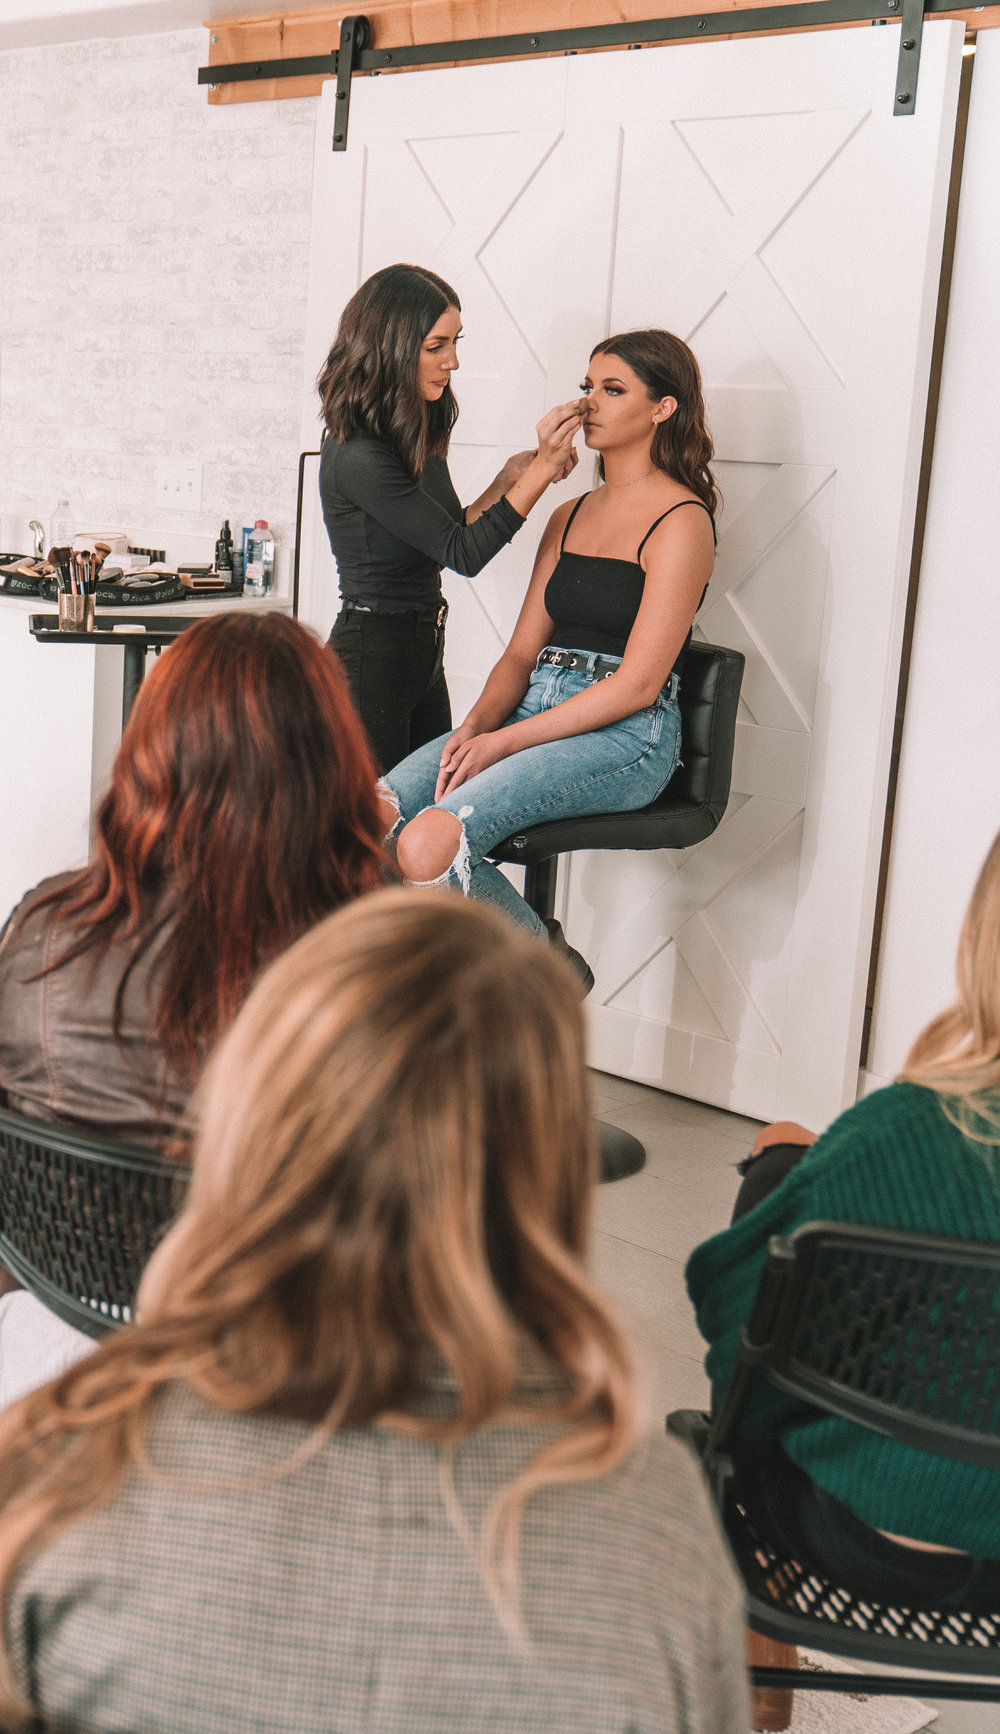 SLC Makeup Class - When: Wednesday, January 23, 201912:00 pm - 4:00 pm MSTWhere: Studio 561561 W 200 SSalt Lake City 84101Price: Early bird price is $150. After 1/16/19 price goes up to $200.About:This class is for working makeup artists, aspiring artists, makeup enthusiasts and anyone who has a passion for makeup and wants to learn new techniques. This is a 4 hour class in which Morgan will perform an in depth demonstration of one of her signature looks as well as a Q & A session. Because Morgan wants this class to be beneficial to all skill levels, she will be going over the basics as well as advanced techniques. She is excited and passionate to share her knowledge and experience in this class and can't wait to help you excel in your makeup career.Topics that will be covered:How to perfectly blend eyeshadow in a flattering way for every eye shape. The brushes, tools and techniques you need to achieve seamless blending.How to apply false lashes and have them blend into natural lashes. The products and tools that will make it an easy application.How to shape and fill in eyebrows to suit the client's face using both brow pencils and powder. You will learn how to set them properly to last all day.How to affectively prep the skin for makeup. You will learn techniques for oily, dry, combination and normal skin types.How to achieve a flawless full coverage base. Morgan will demonstrate her techniques on layering product to get a beautiful airbrush-like finish without looking cakey or heavy.How to sculpt and define the face with contour, bronzer, highlight and blush. How to know how much to apply to give the skin a healthy and luminous color and glow. You will learn with both cream and powder products.How to line and apply lipstick.How to set the face properly for all day wear.More topics will be covered these are just the main points. Morgan will be teaching a signature look all the way from start to finish.This class was designed with makeup artists in mind but that doe